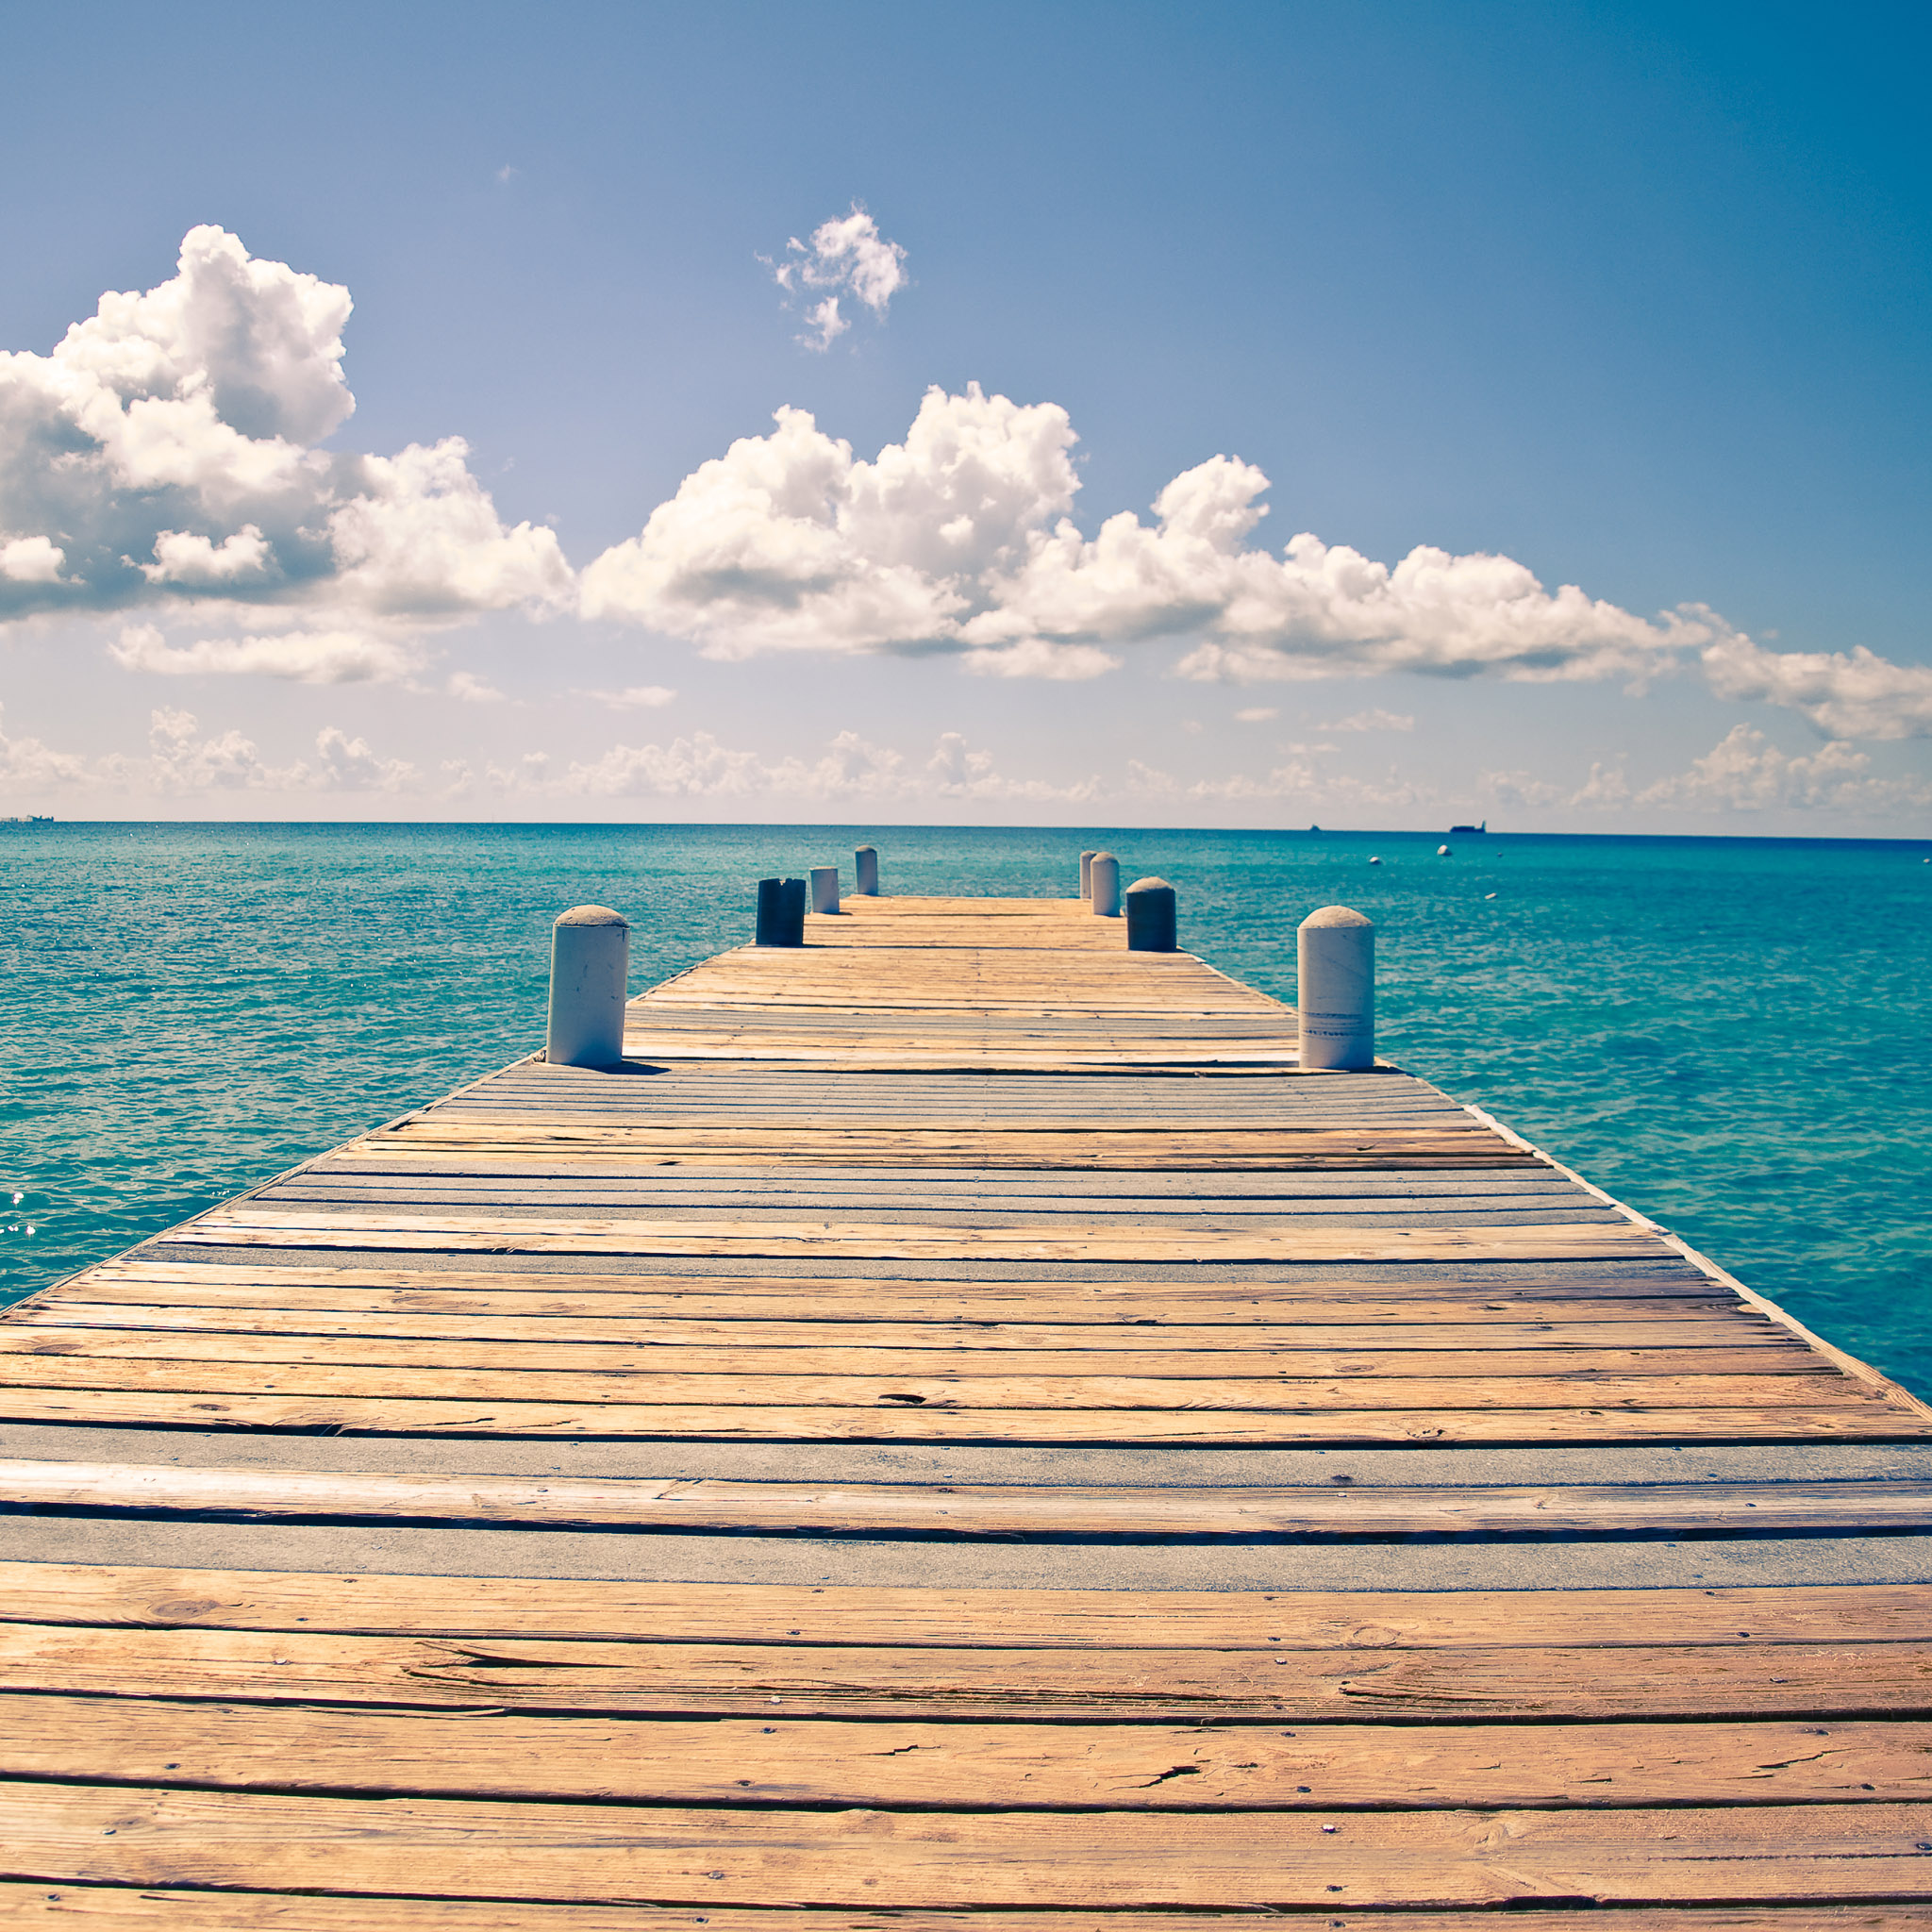 jorge quinteros - wooden dock ipad wallpaper